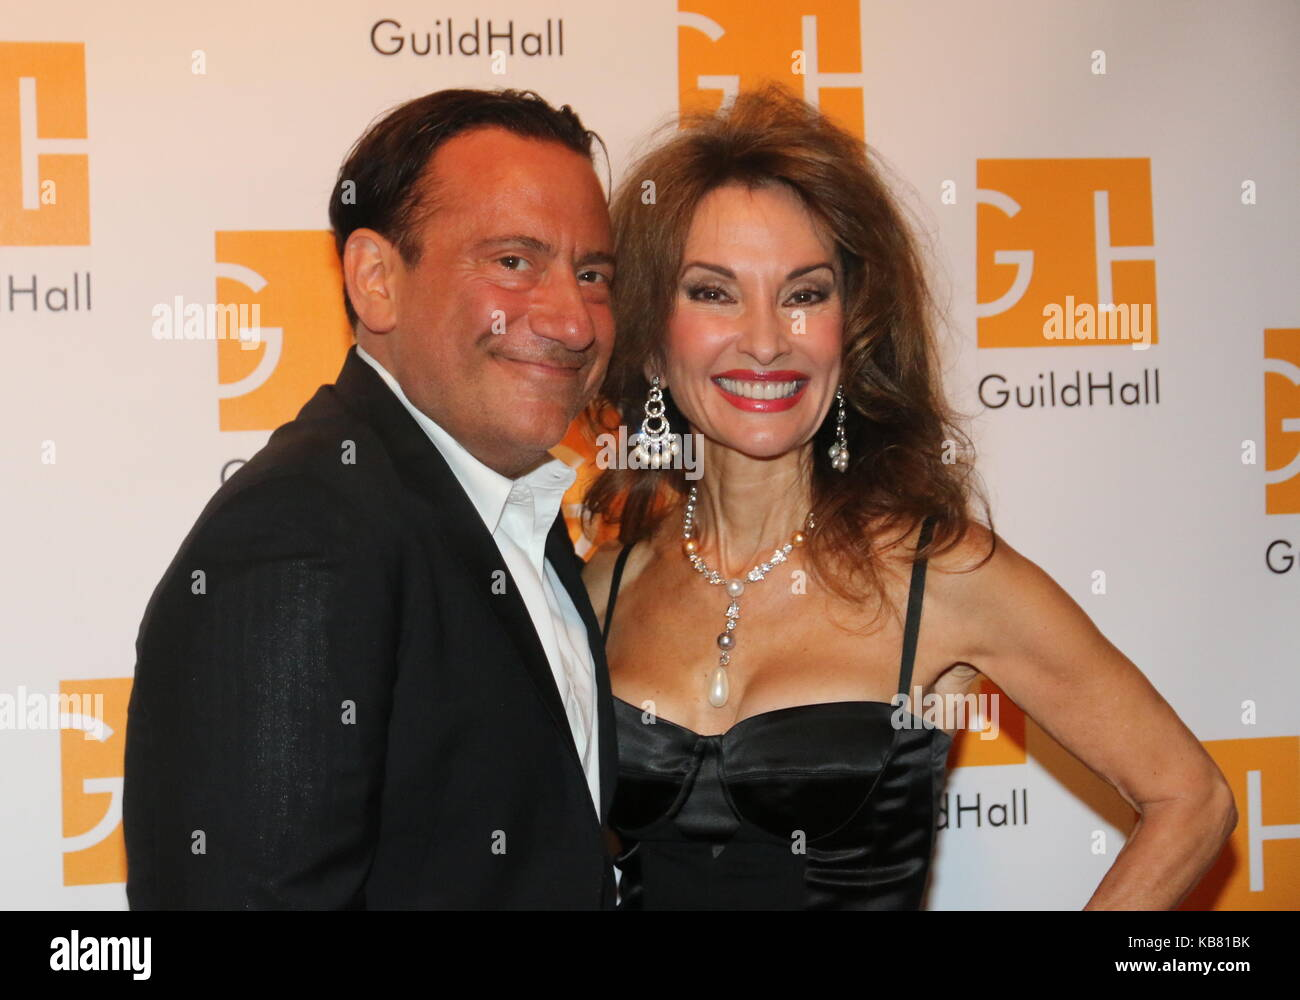 Celebrity Autobiography Guild Hall 2017  Featuring: Eugene Pack, Susan Lucci Where: East Hampton, New York, United - Stock Image